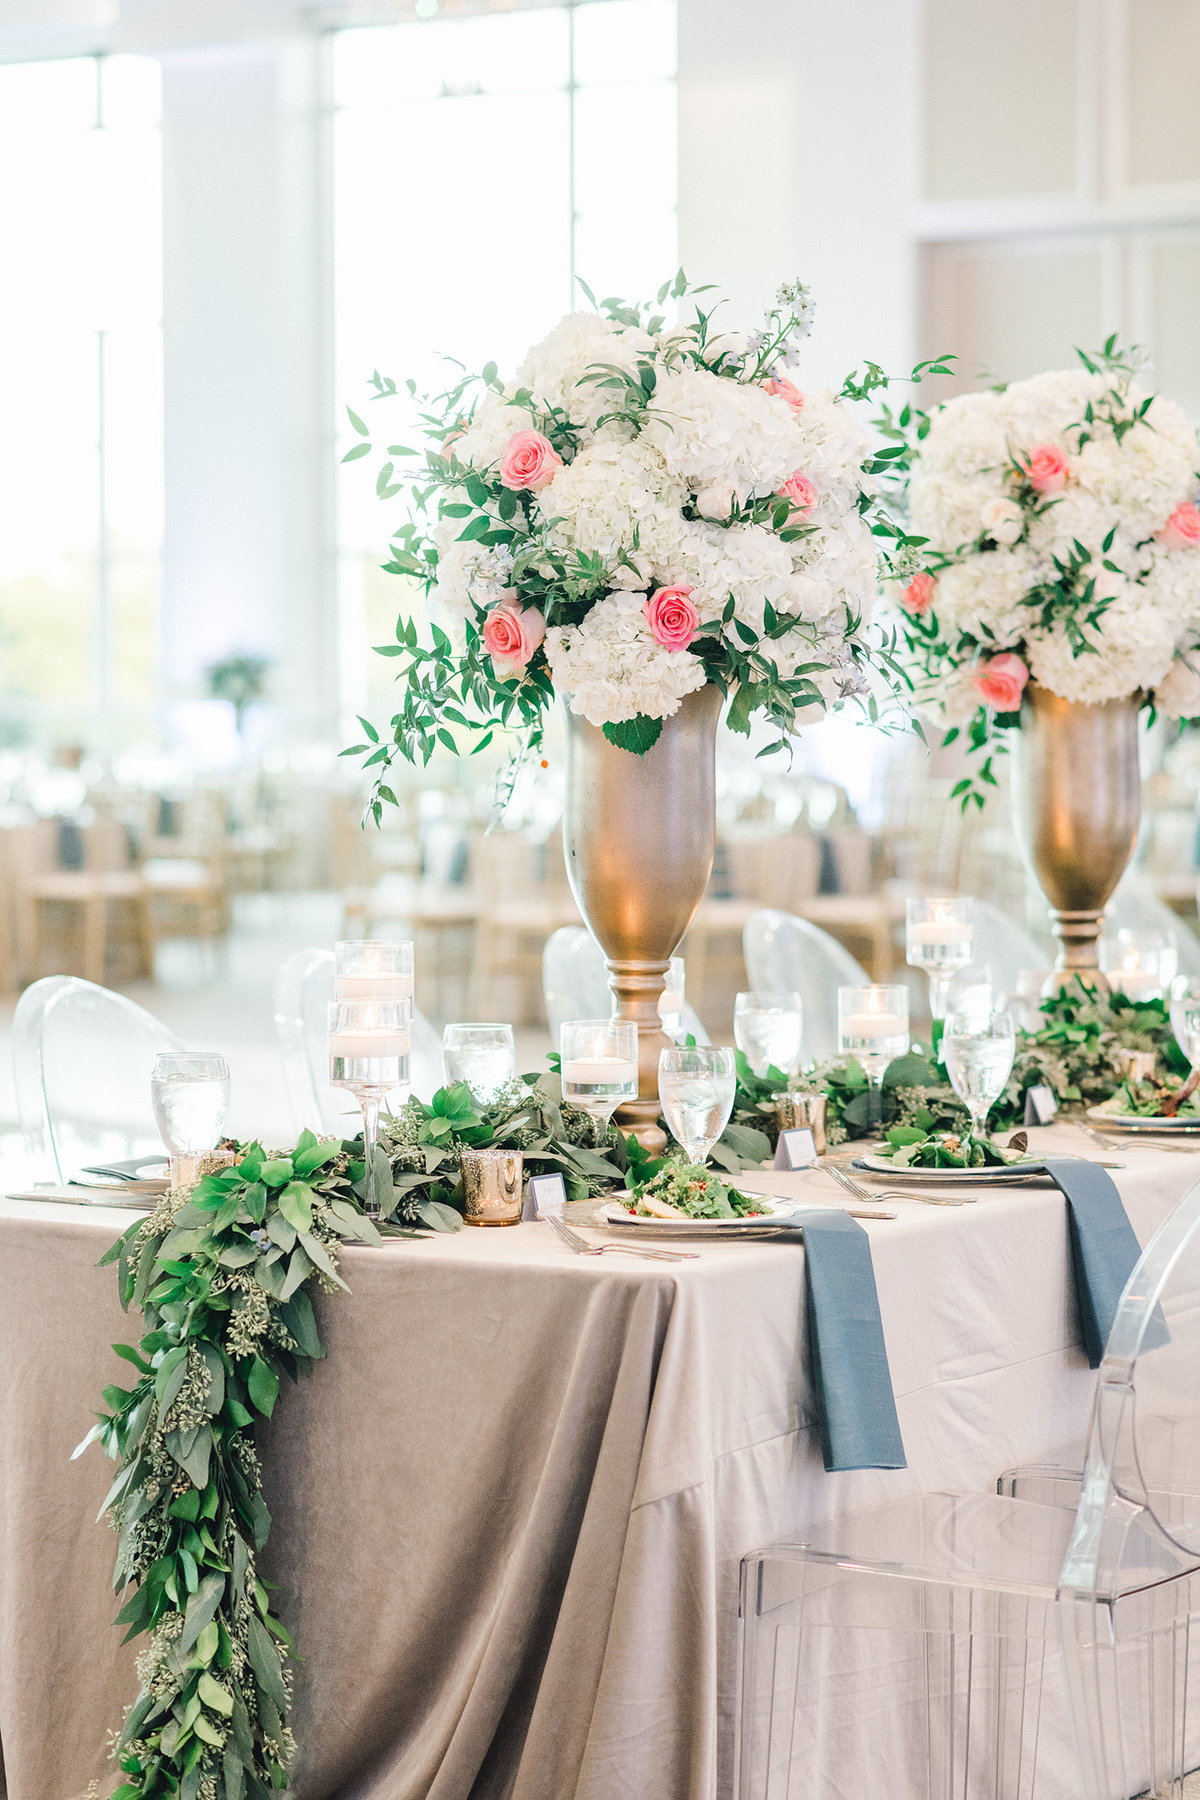 Dallas Wedding Floral Design - A Stylish Soiree - Dallas Wedding Florist - 436